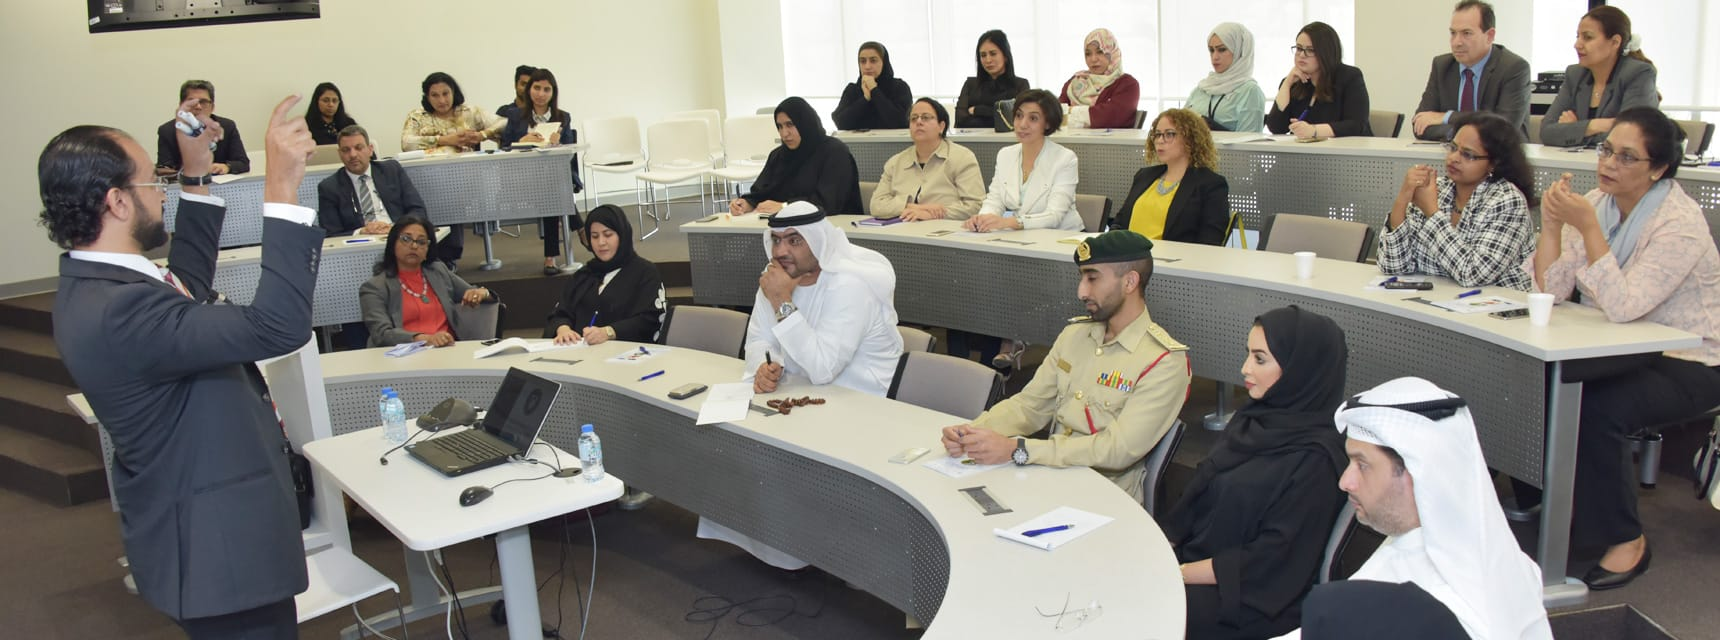 A Brainstorming Session on Happiness at University of Dubai